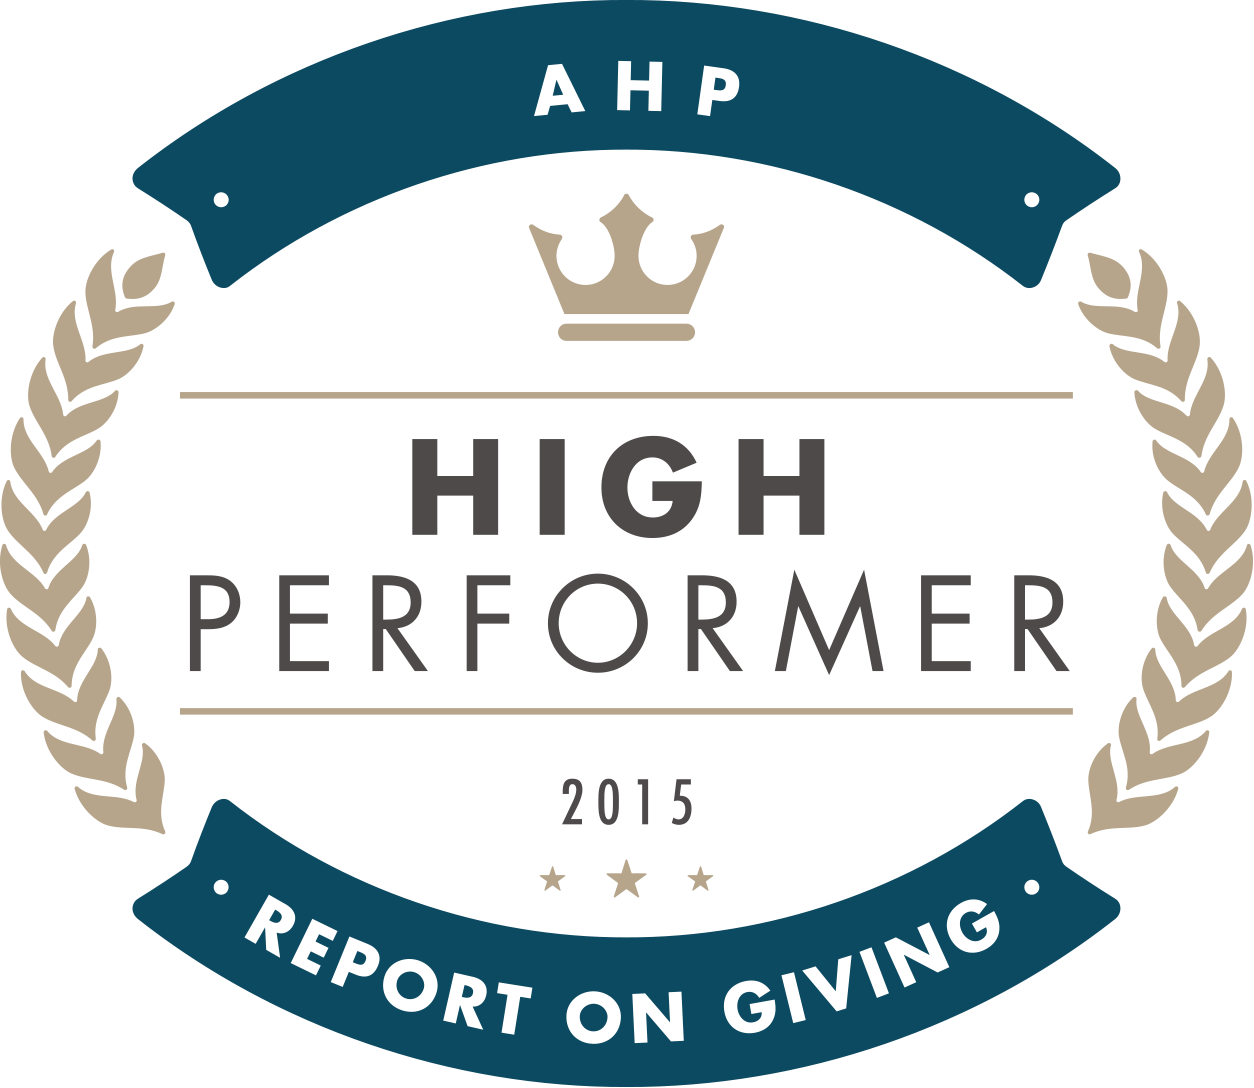 2015 AHP Report on giving High Performer